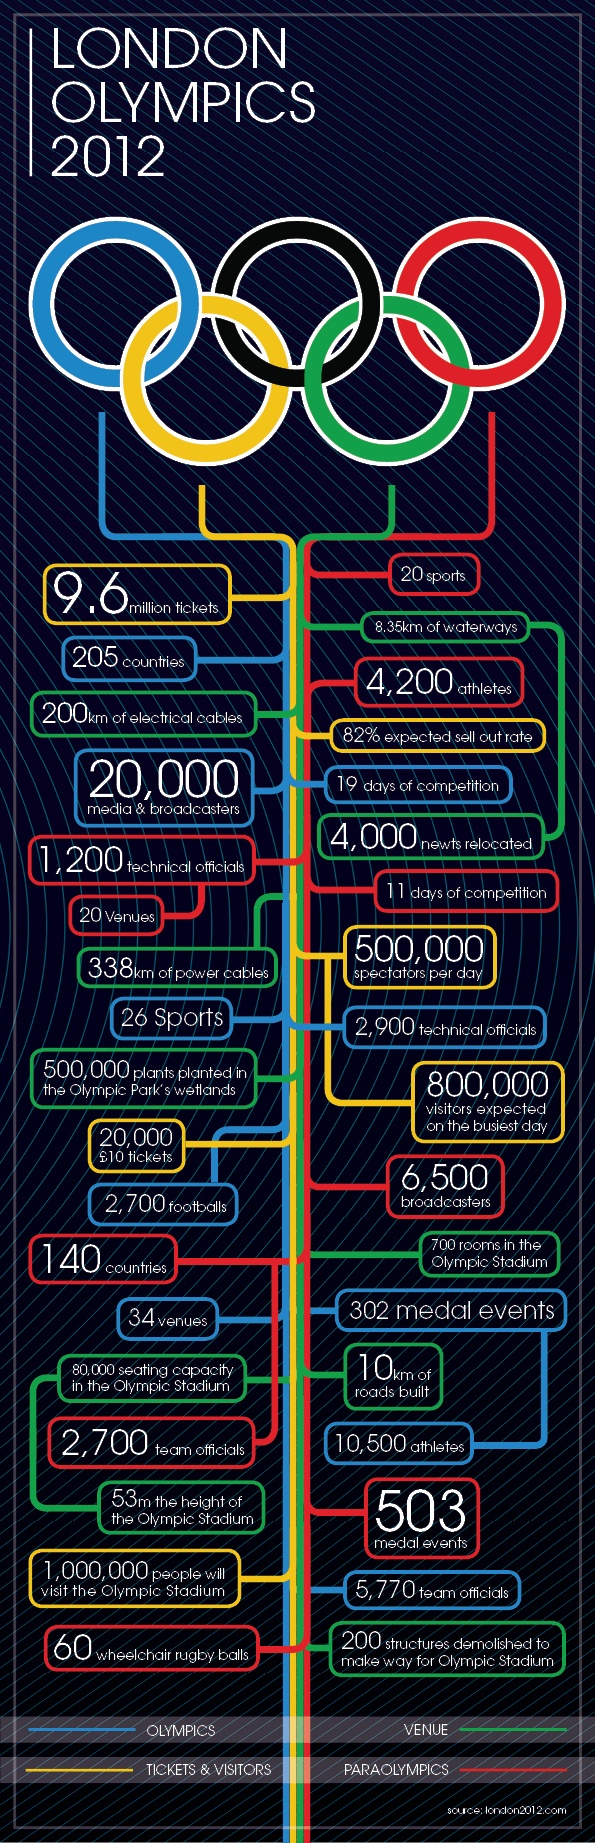 London 2012 - The Olympics by numbers